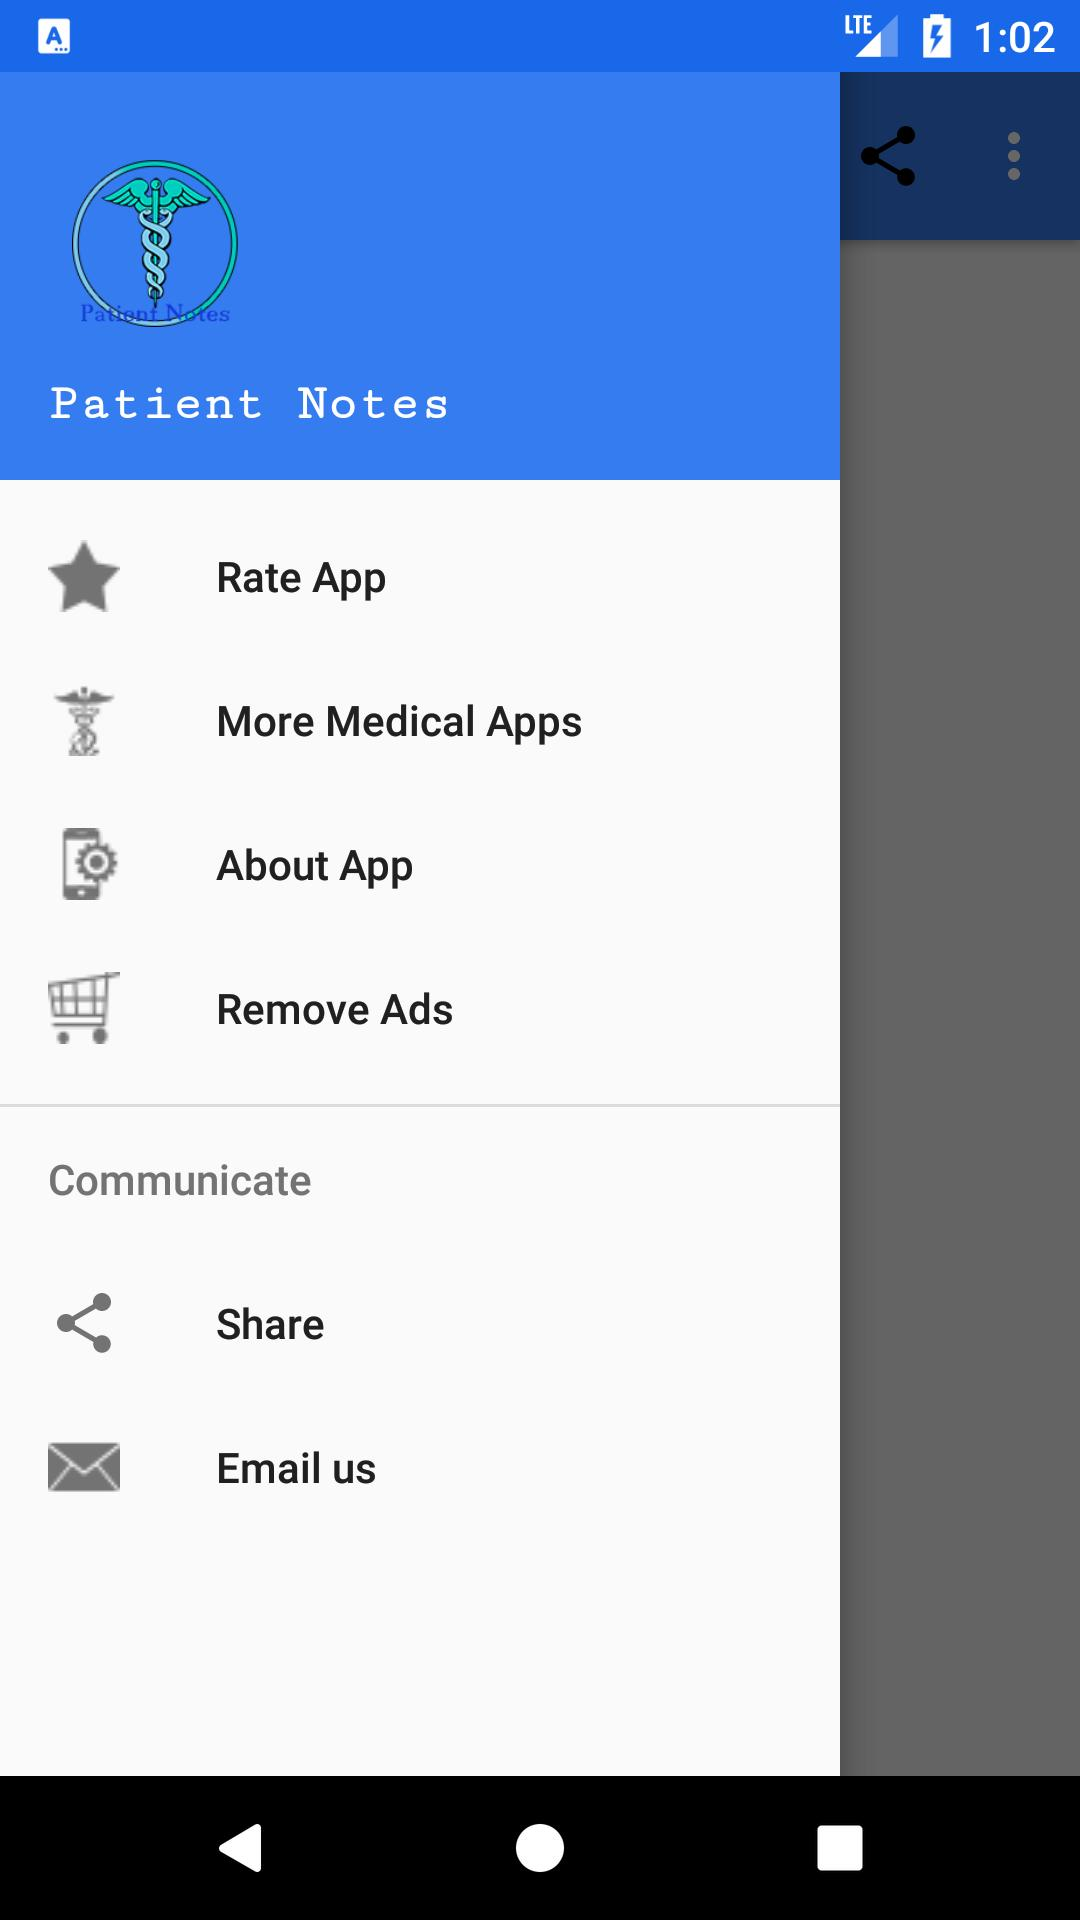 Patient Notes for Android - APK Download